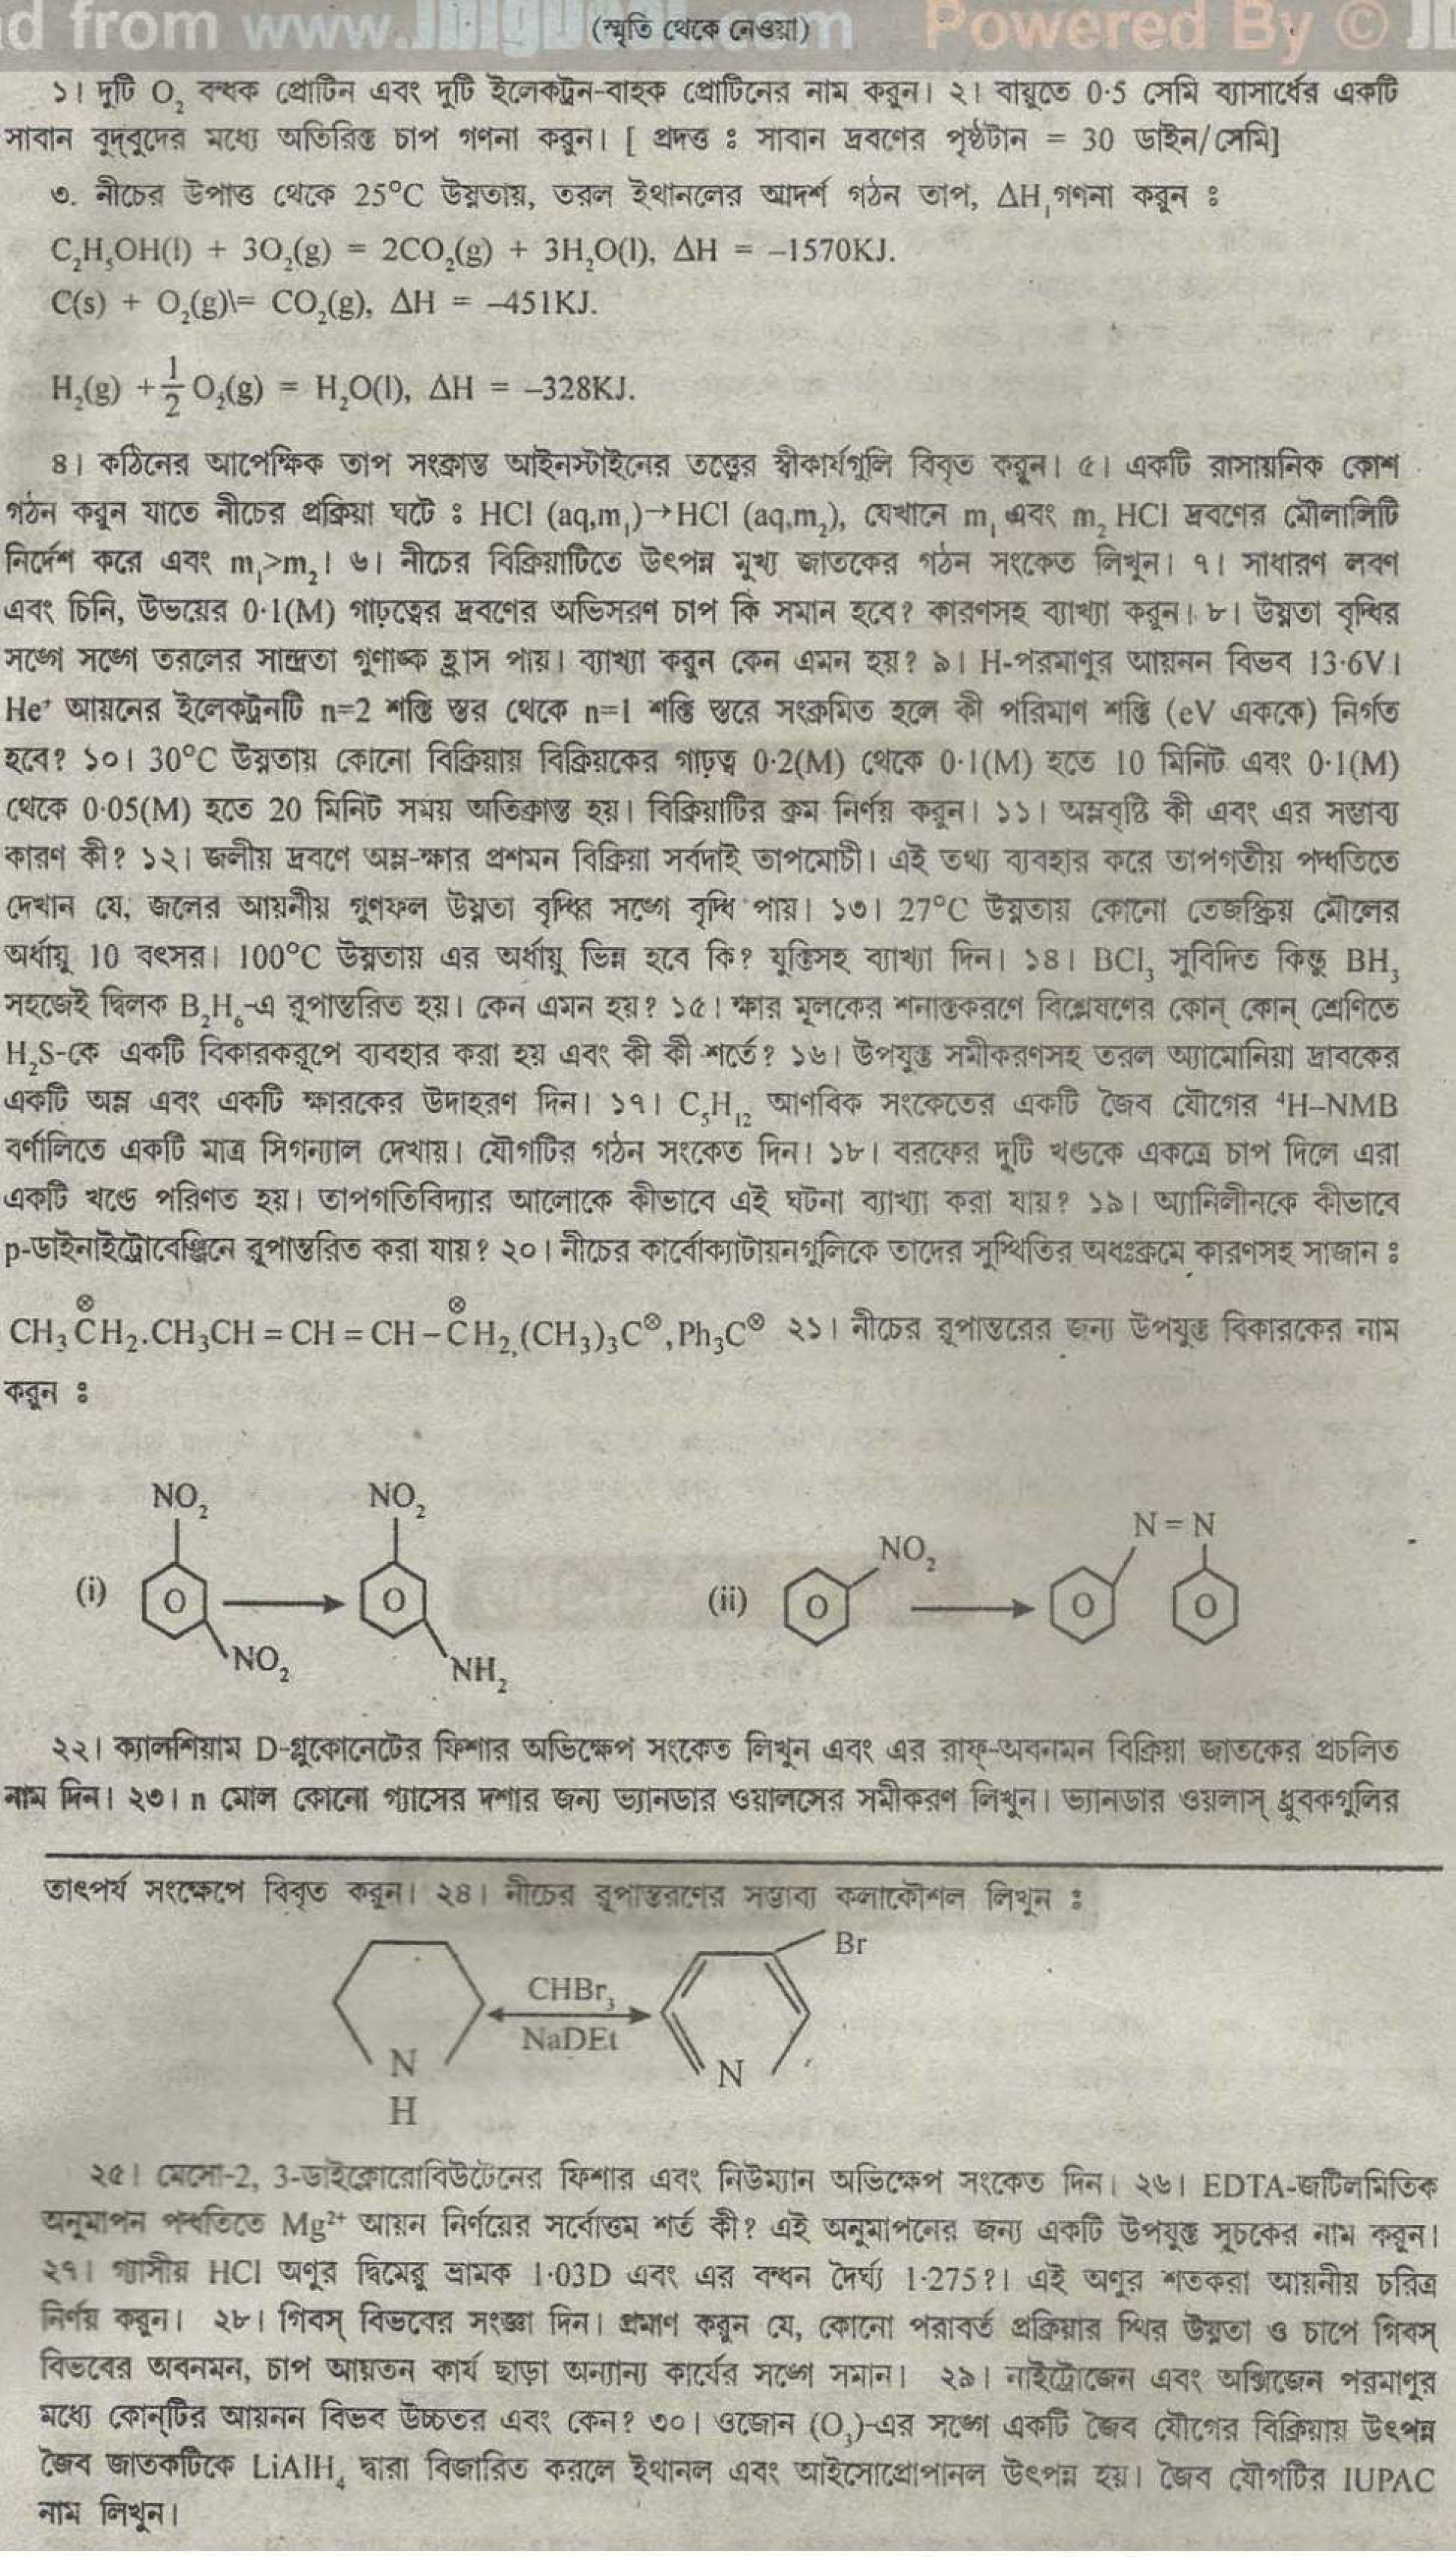 018 Essay Example West Bengal School Service Commission Last Year Question Papers Of Chemistry Pope On Unique Criticism Part 2 Pope's Was Written In 1920